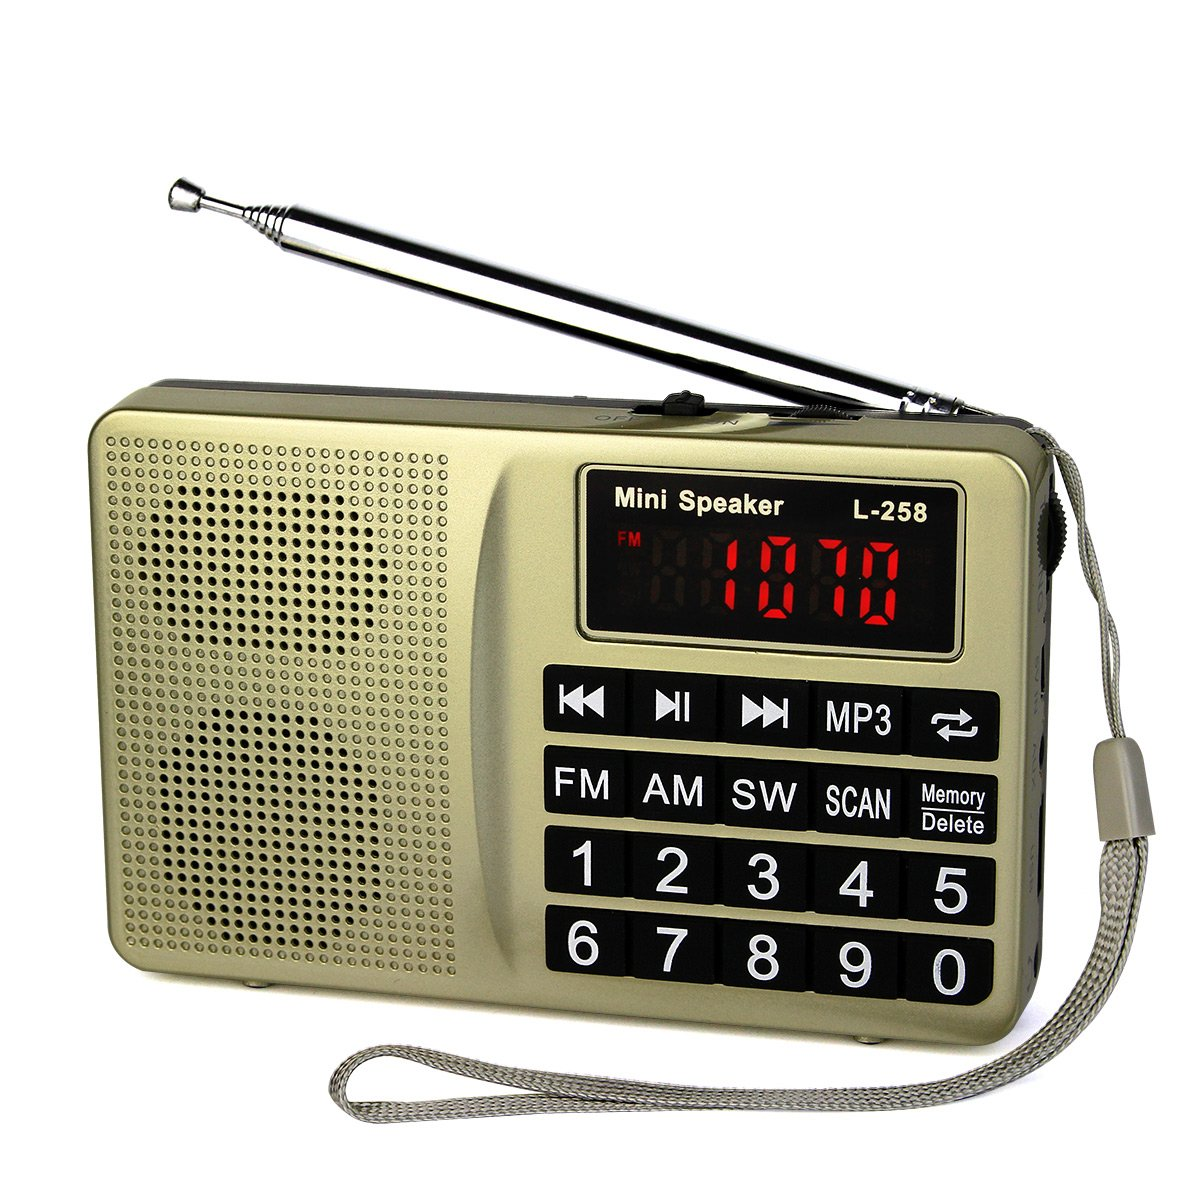 TIVDIO L-258 AM FM Shortwave Transistor Radio Support Micro TF Card and USB Driver AUX Input MP3 Player USB Charging Cable 1000MAH Rechargeable Li-ion Battery(Gold)